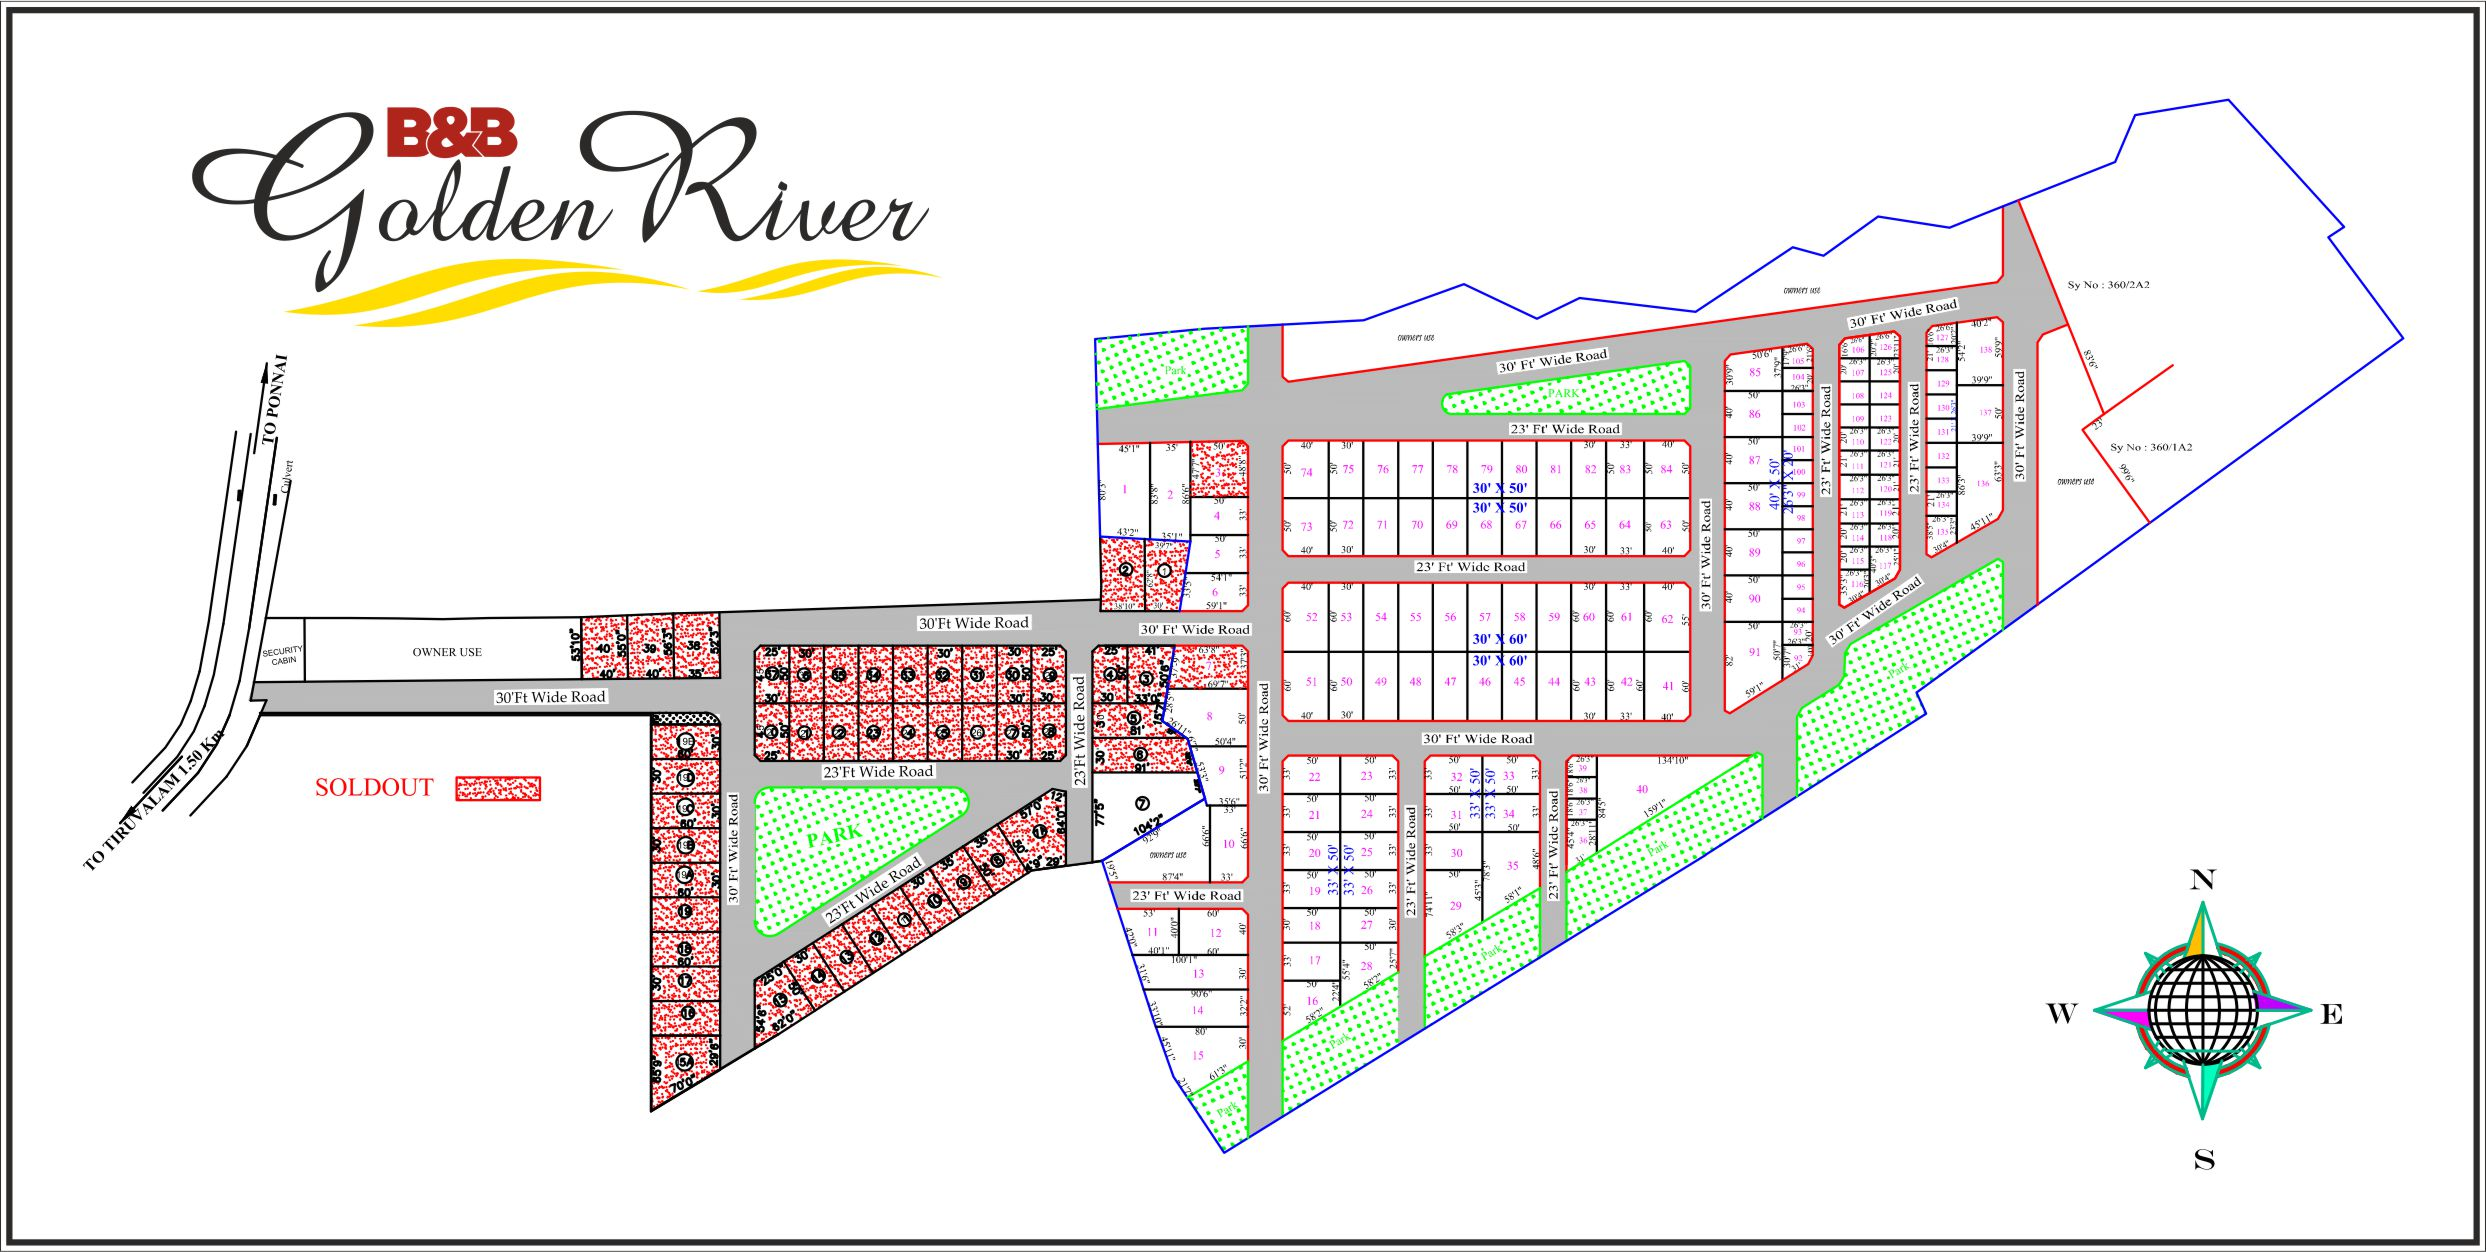 Golden River Layout